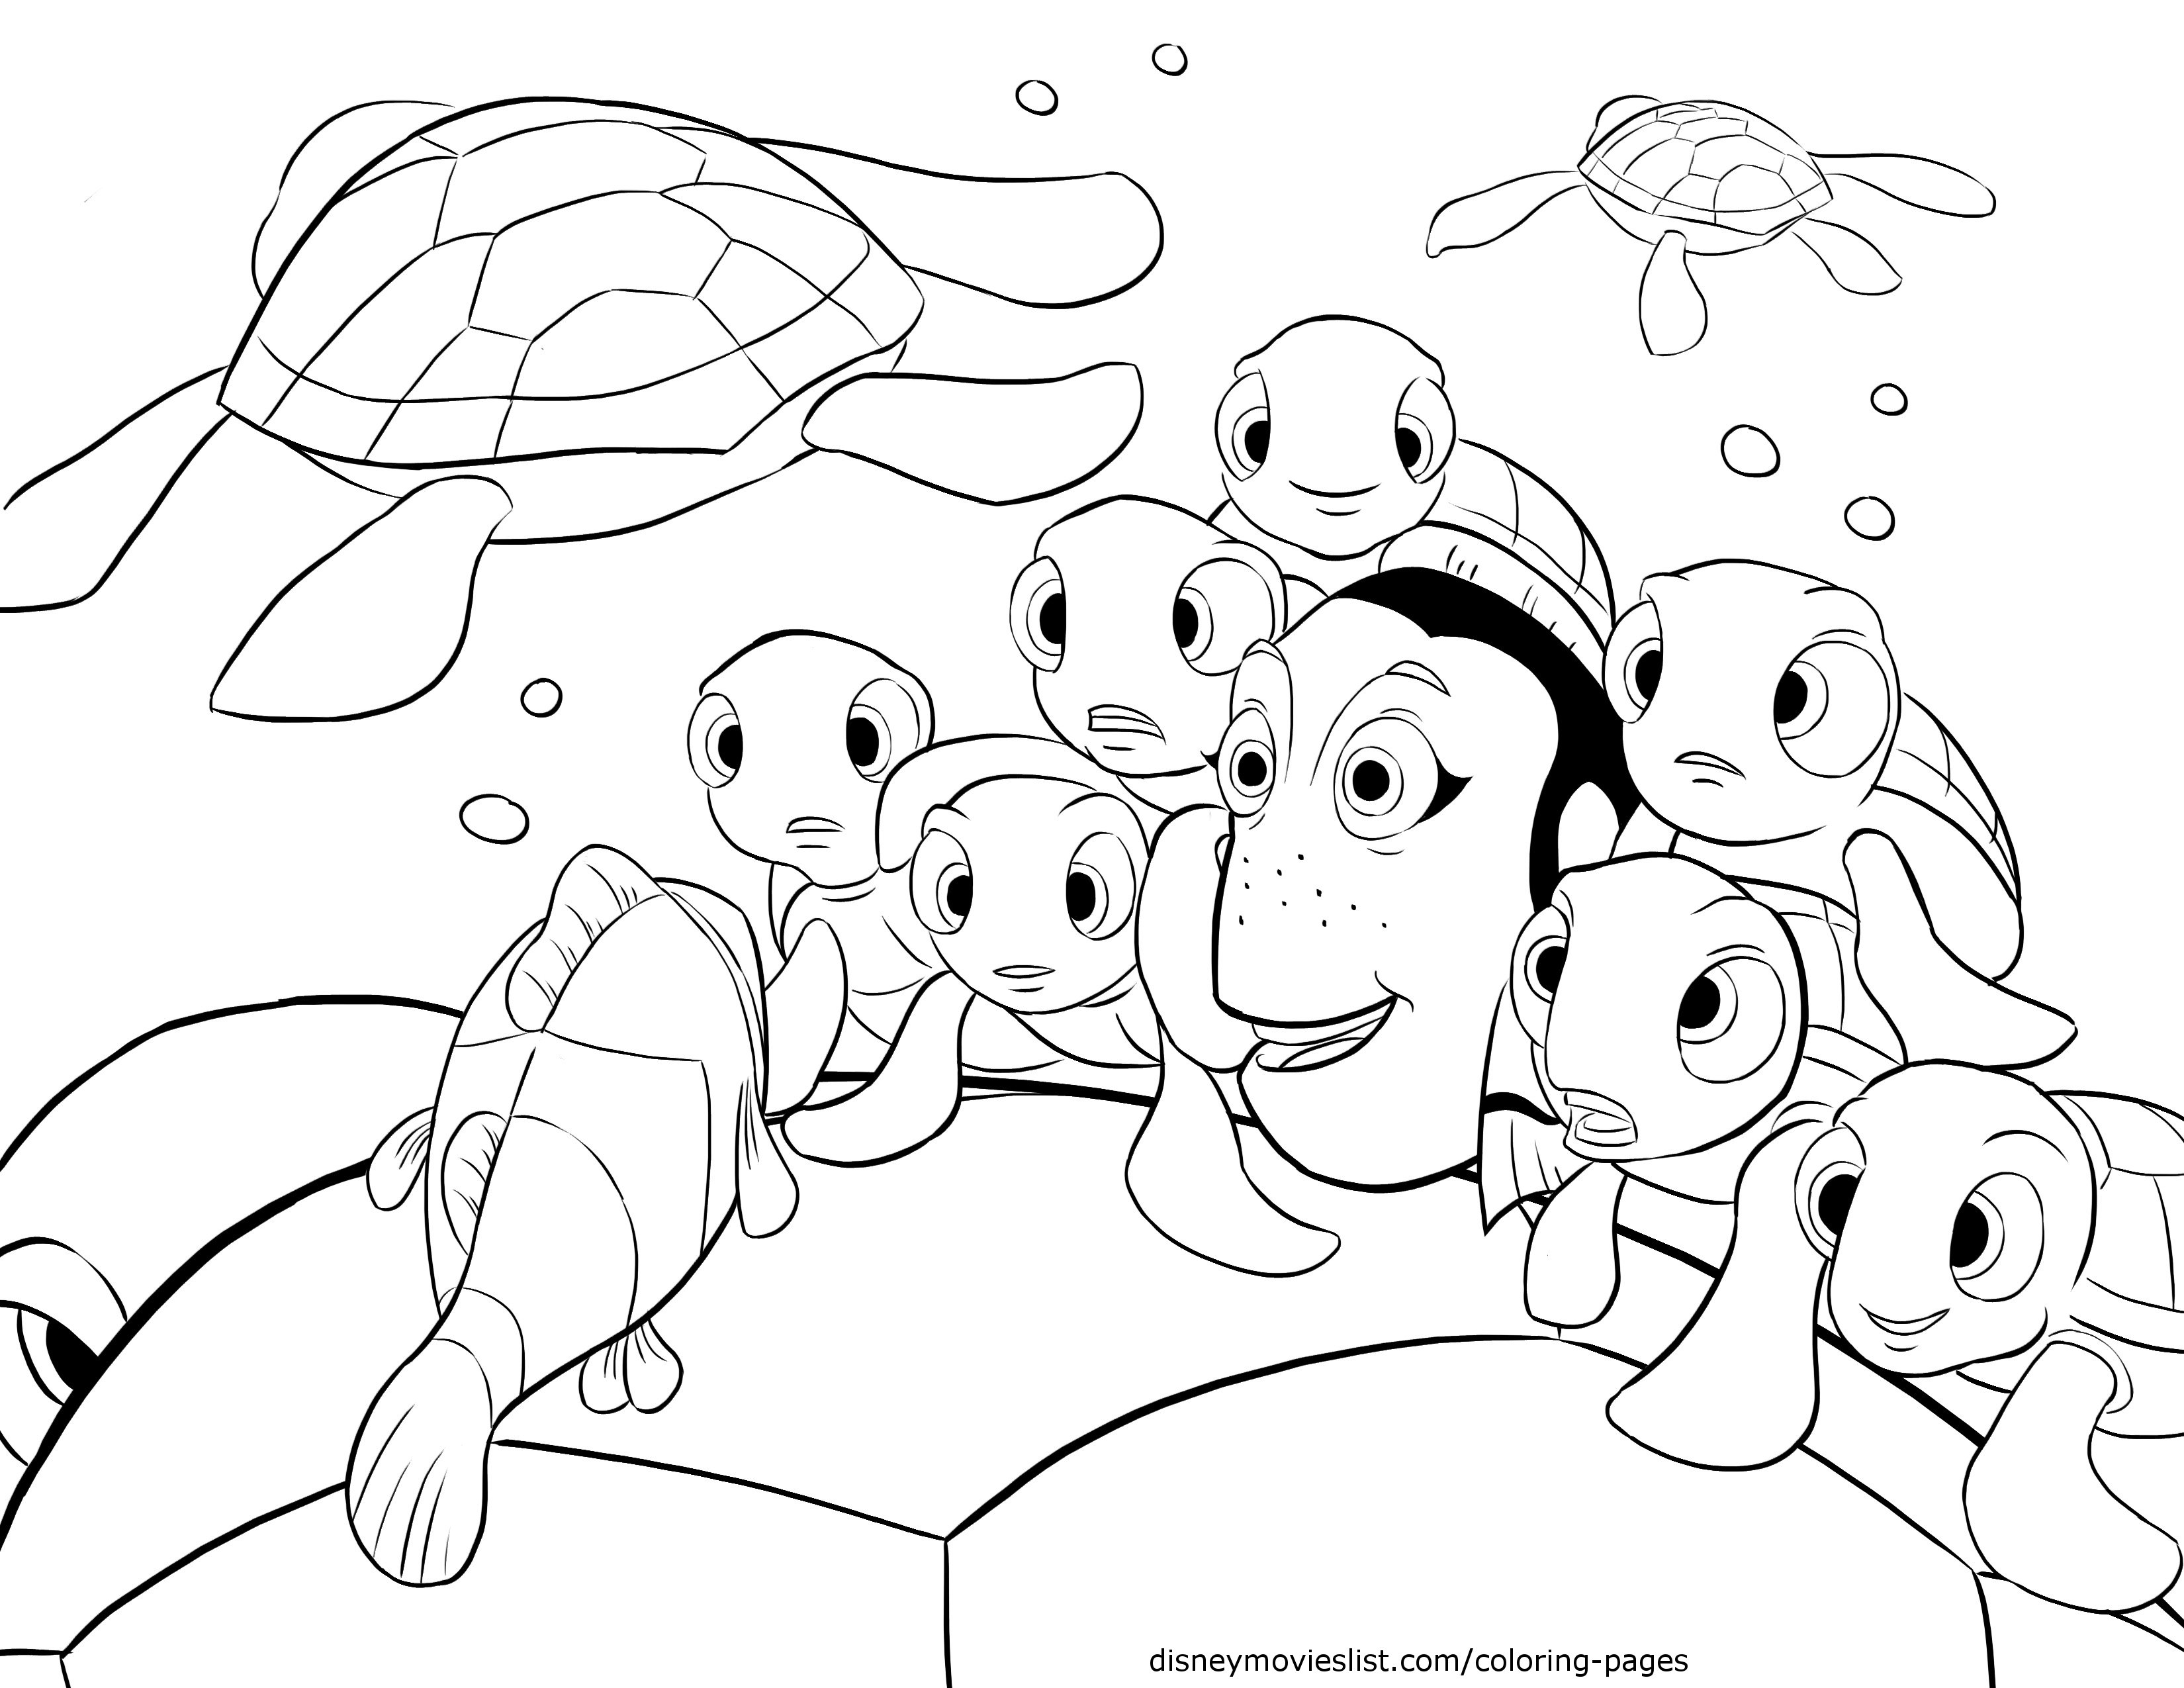 3300x2550 Simple Finding Nemo Coloring Pages Pdf To Down